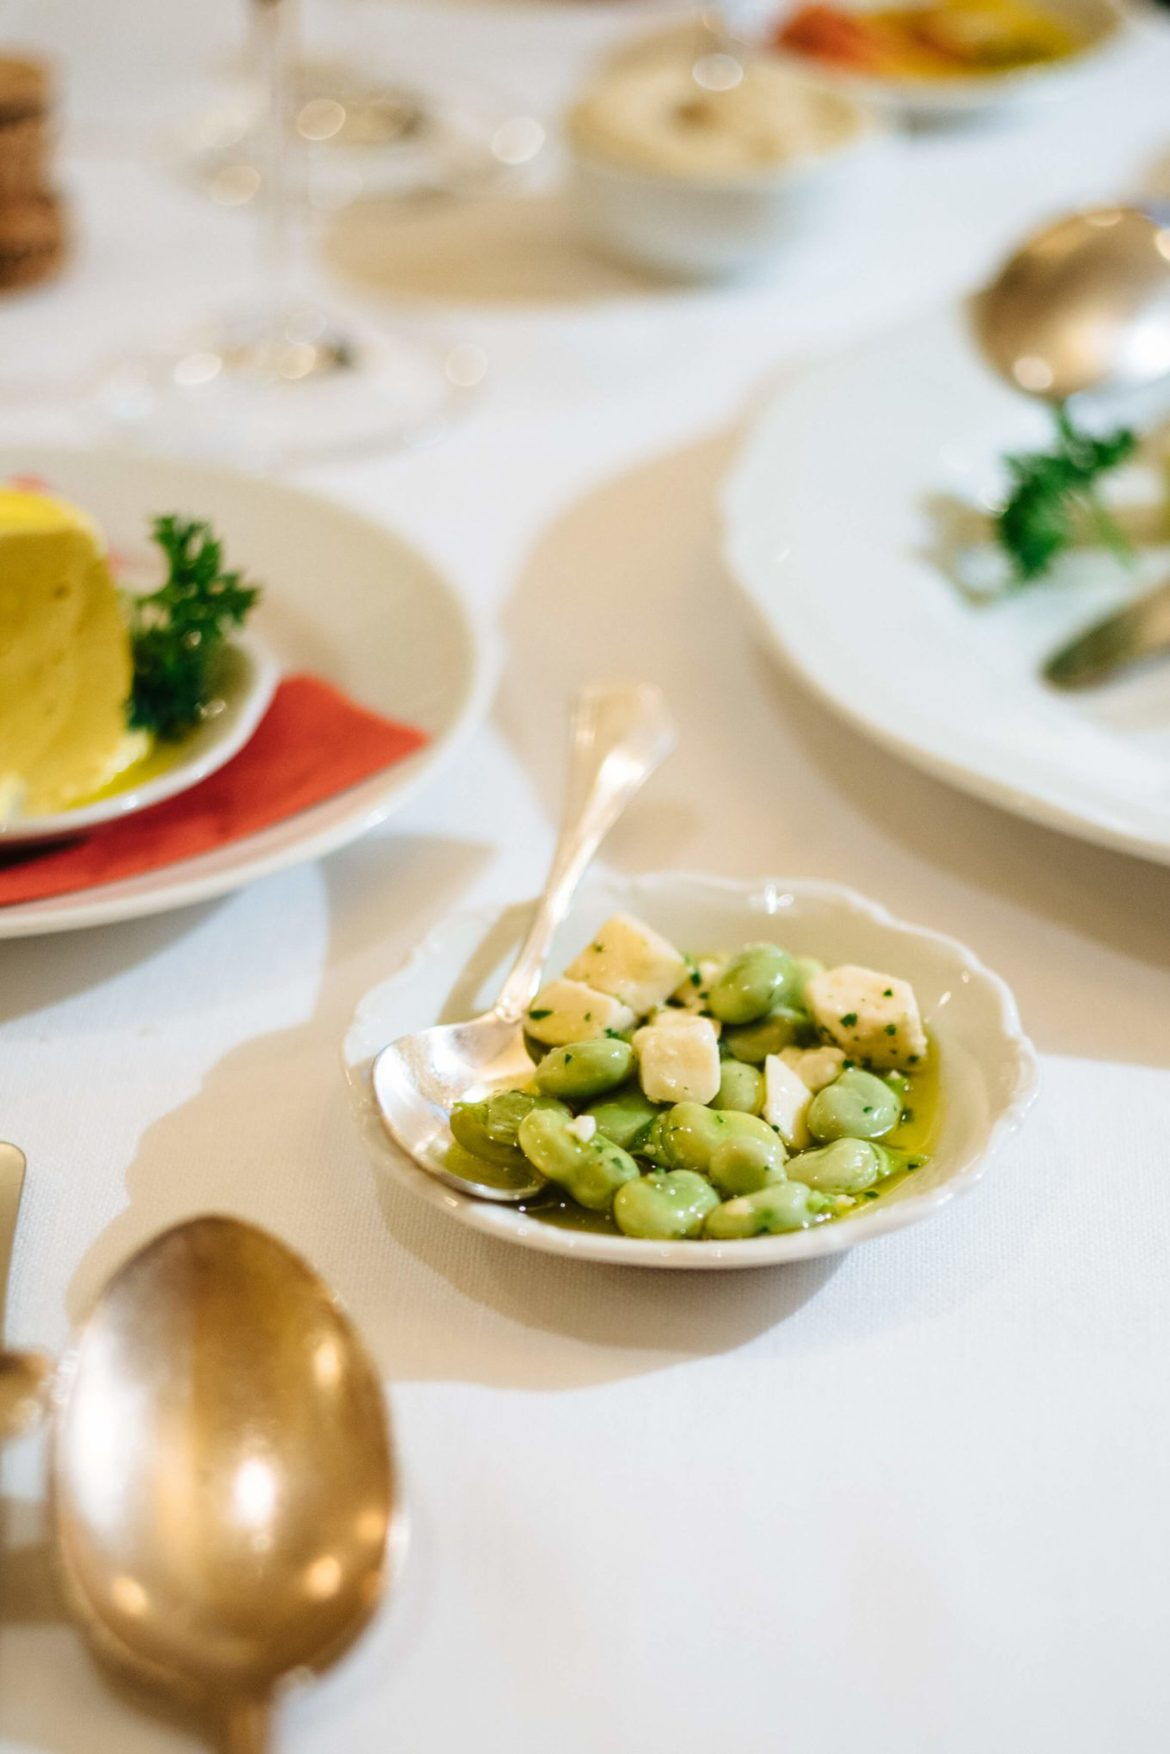 Fava beans with pecorino cheese at Ristorante Cibreo in Florence, The Taste Edit